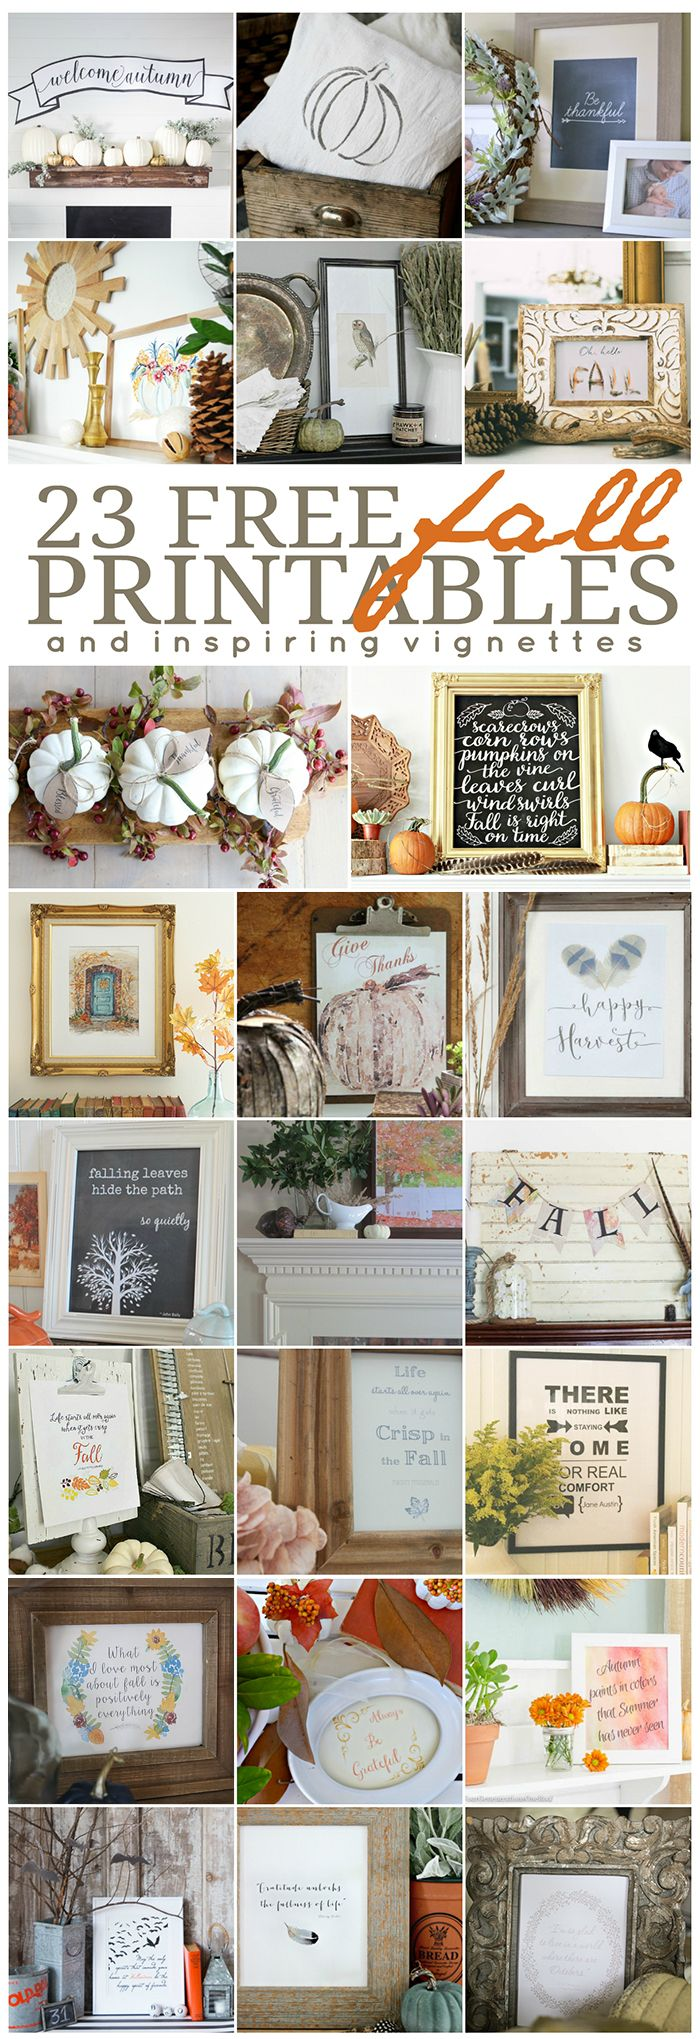 These Free Printables are the perfect way to add little Fall touches to your home this season!